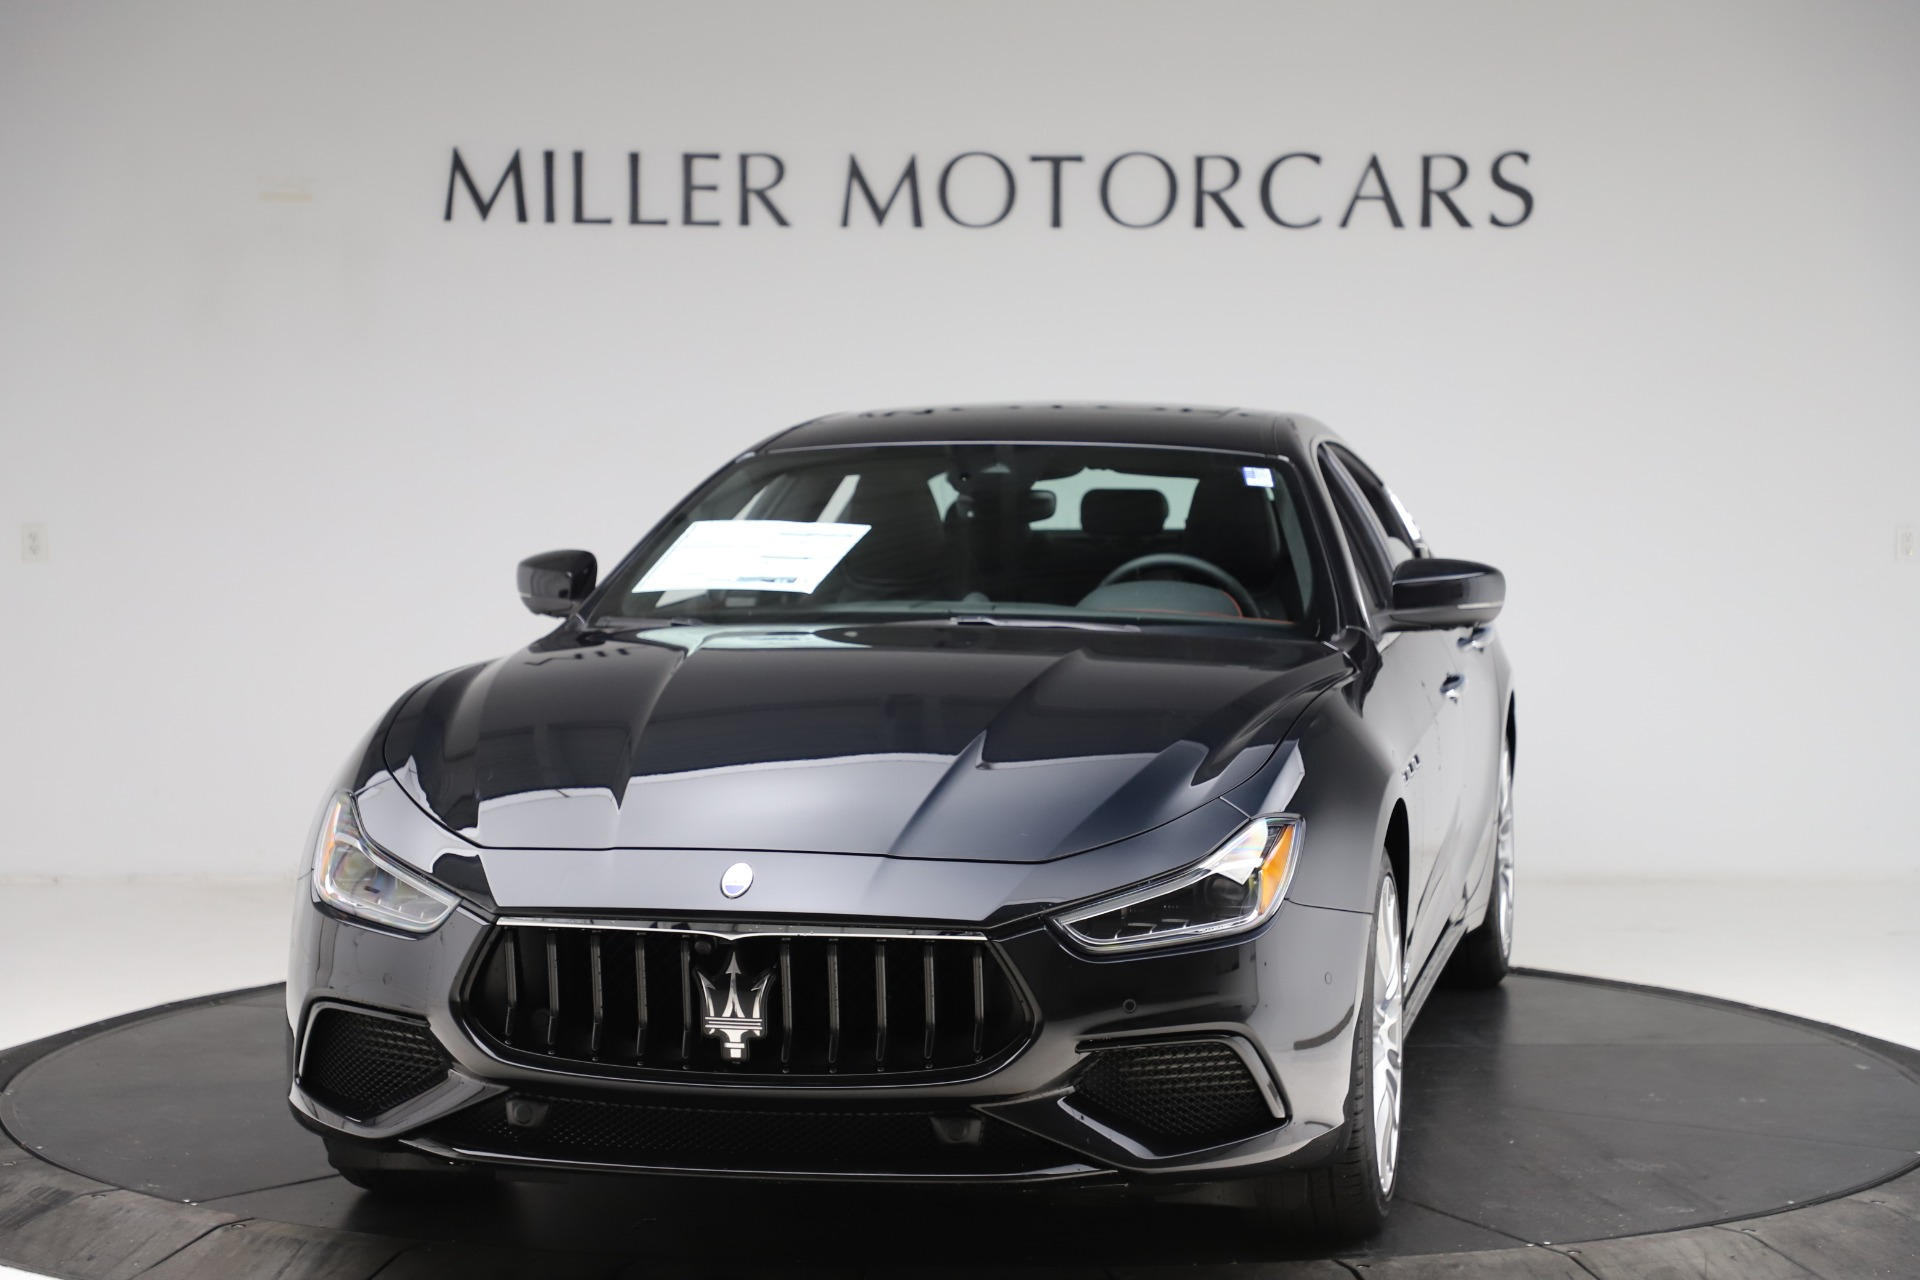 New 2021 Maserati Ghibli S Q4 GranSport for sale $98,035 at Rolls-Royce Motor Cars Greenwich in Greenwich CT 06830 1